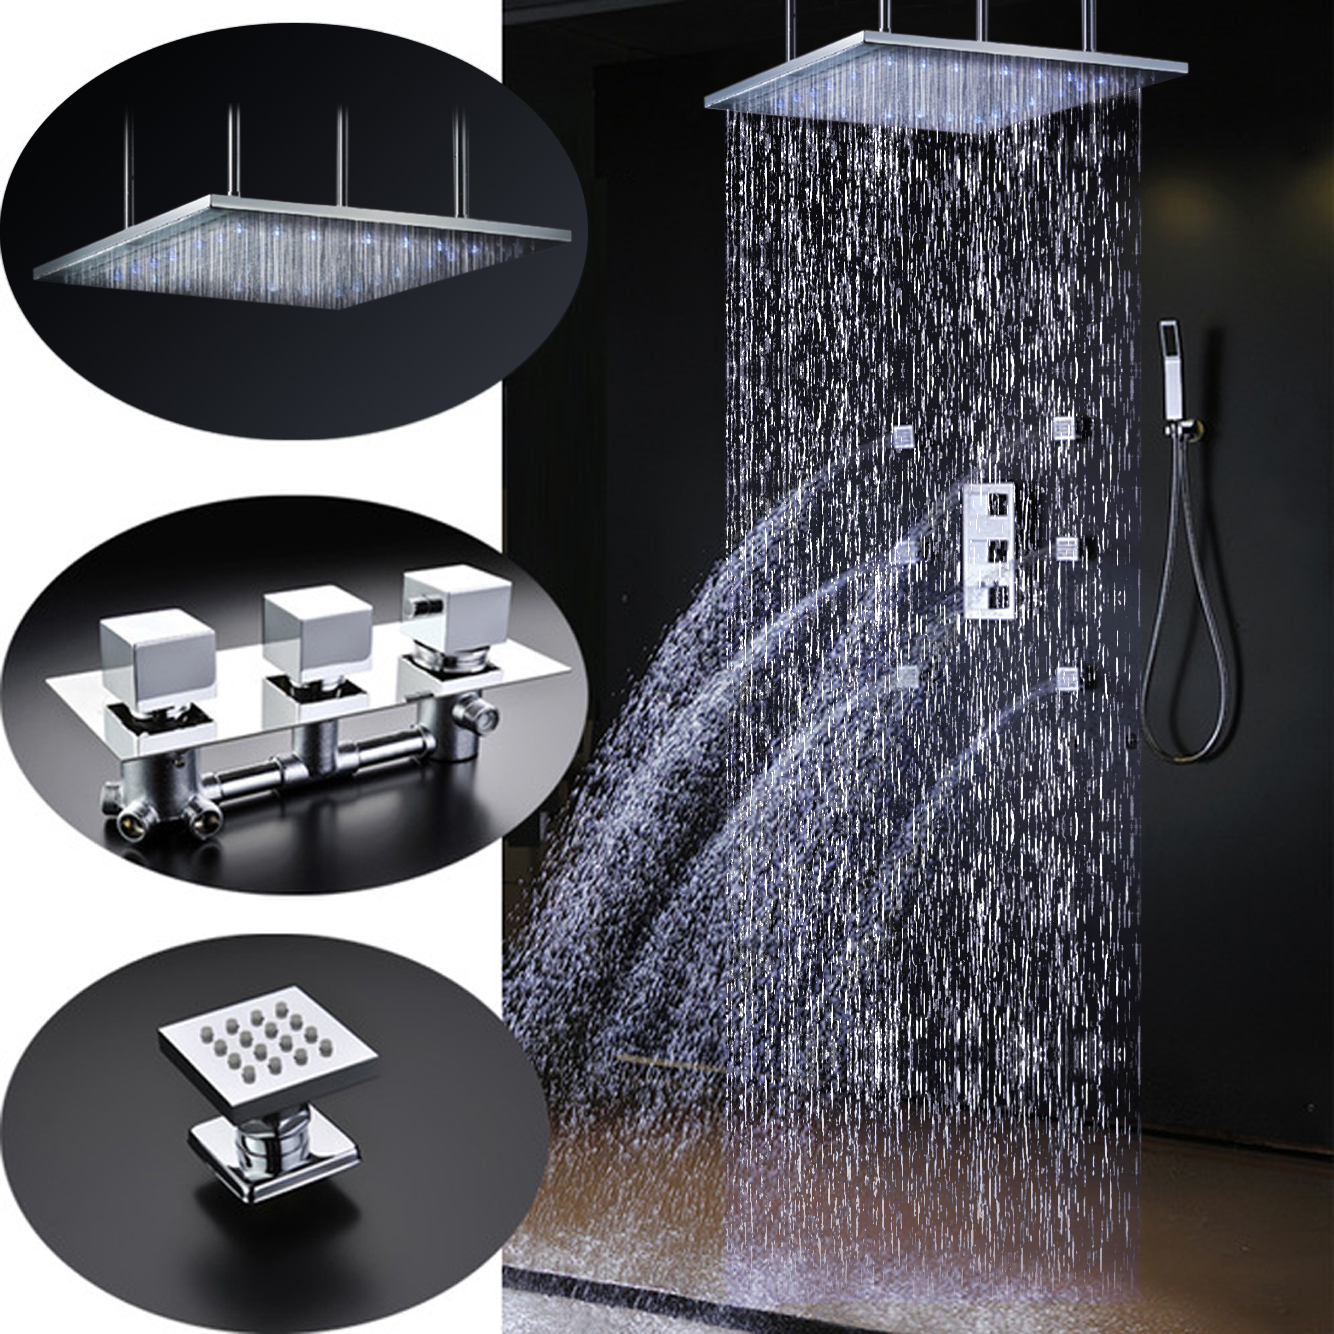 Sicily 40u2033 * 40u2033 Large Chrome LED Rain Shower Head With Body Jets U0026